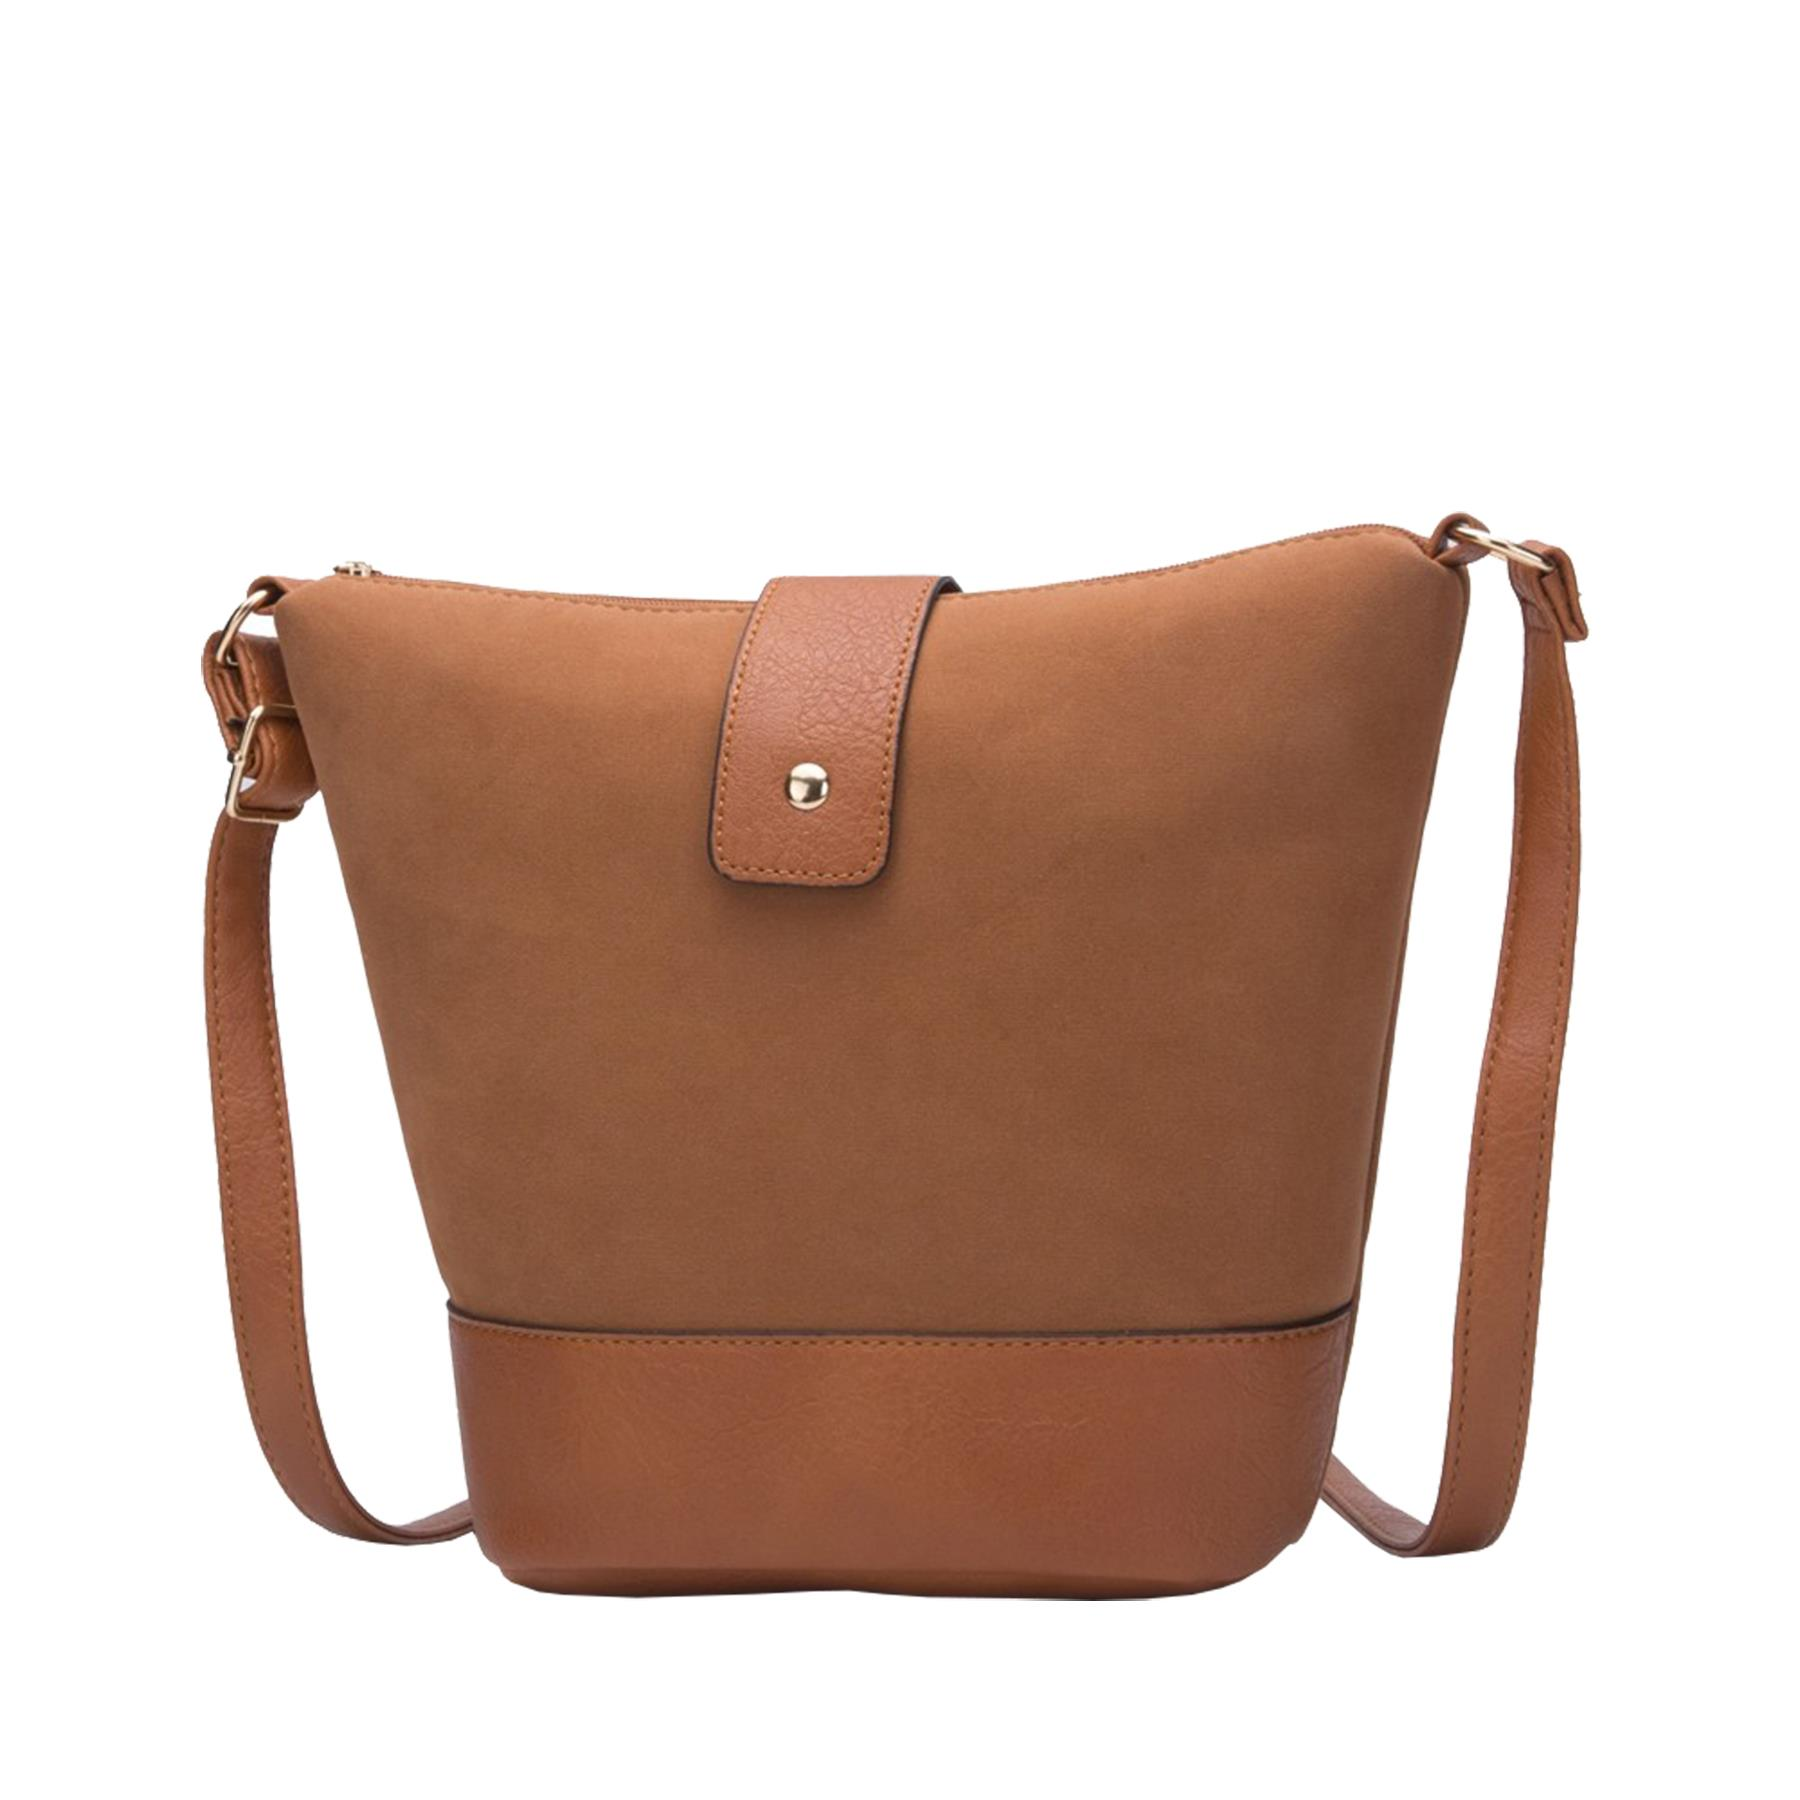 New-Ladies-Two-Toned-Faux-Leather-Fashion-Shoulder-Cross-Body-Bag thumbnail 15